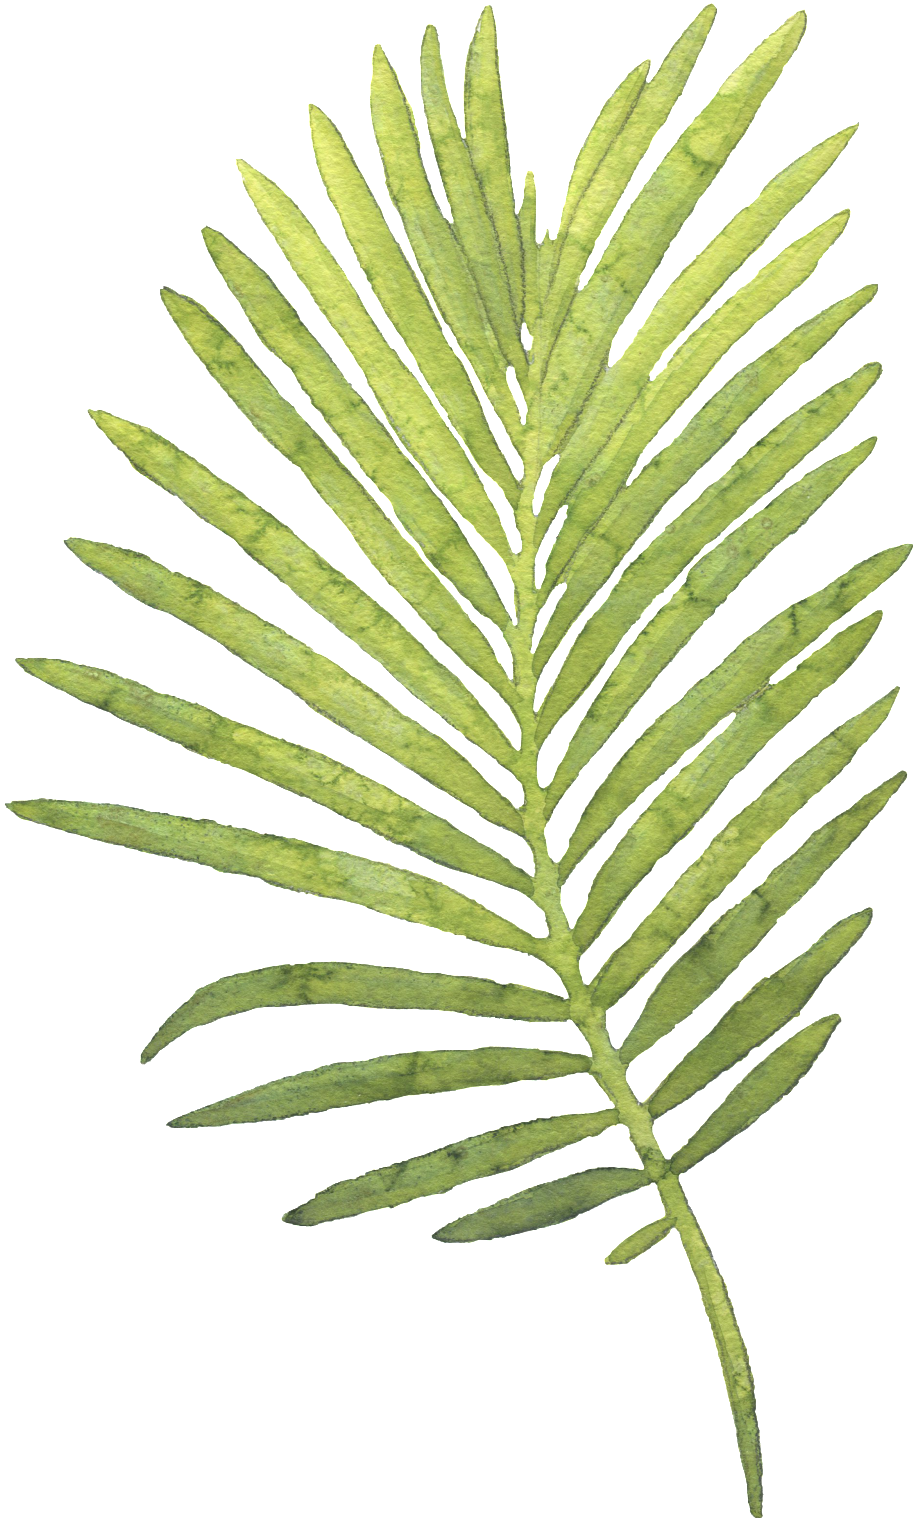 Watercolor Palm Leaves Png Watercolour Palm Leaf No Background Transparent Cartoon Jing Fm Search more hd transparent tropical leaves image on kindpng. watercolour palm leaf no background